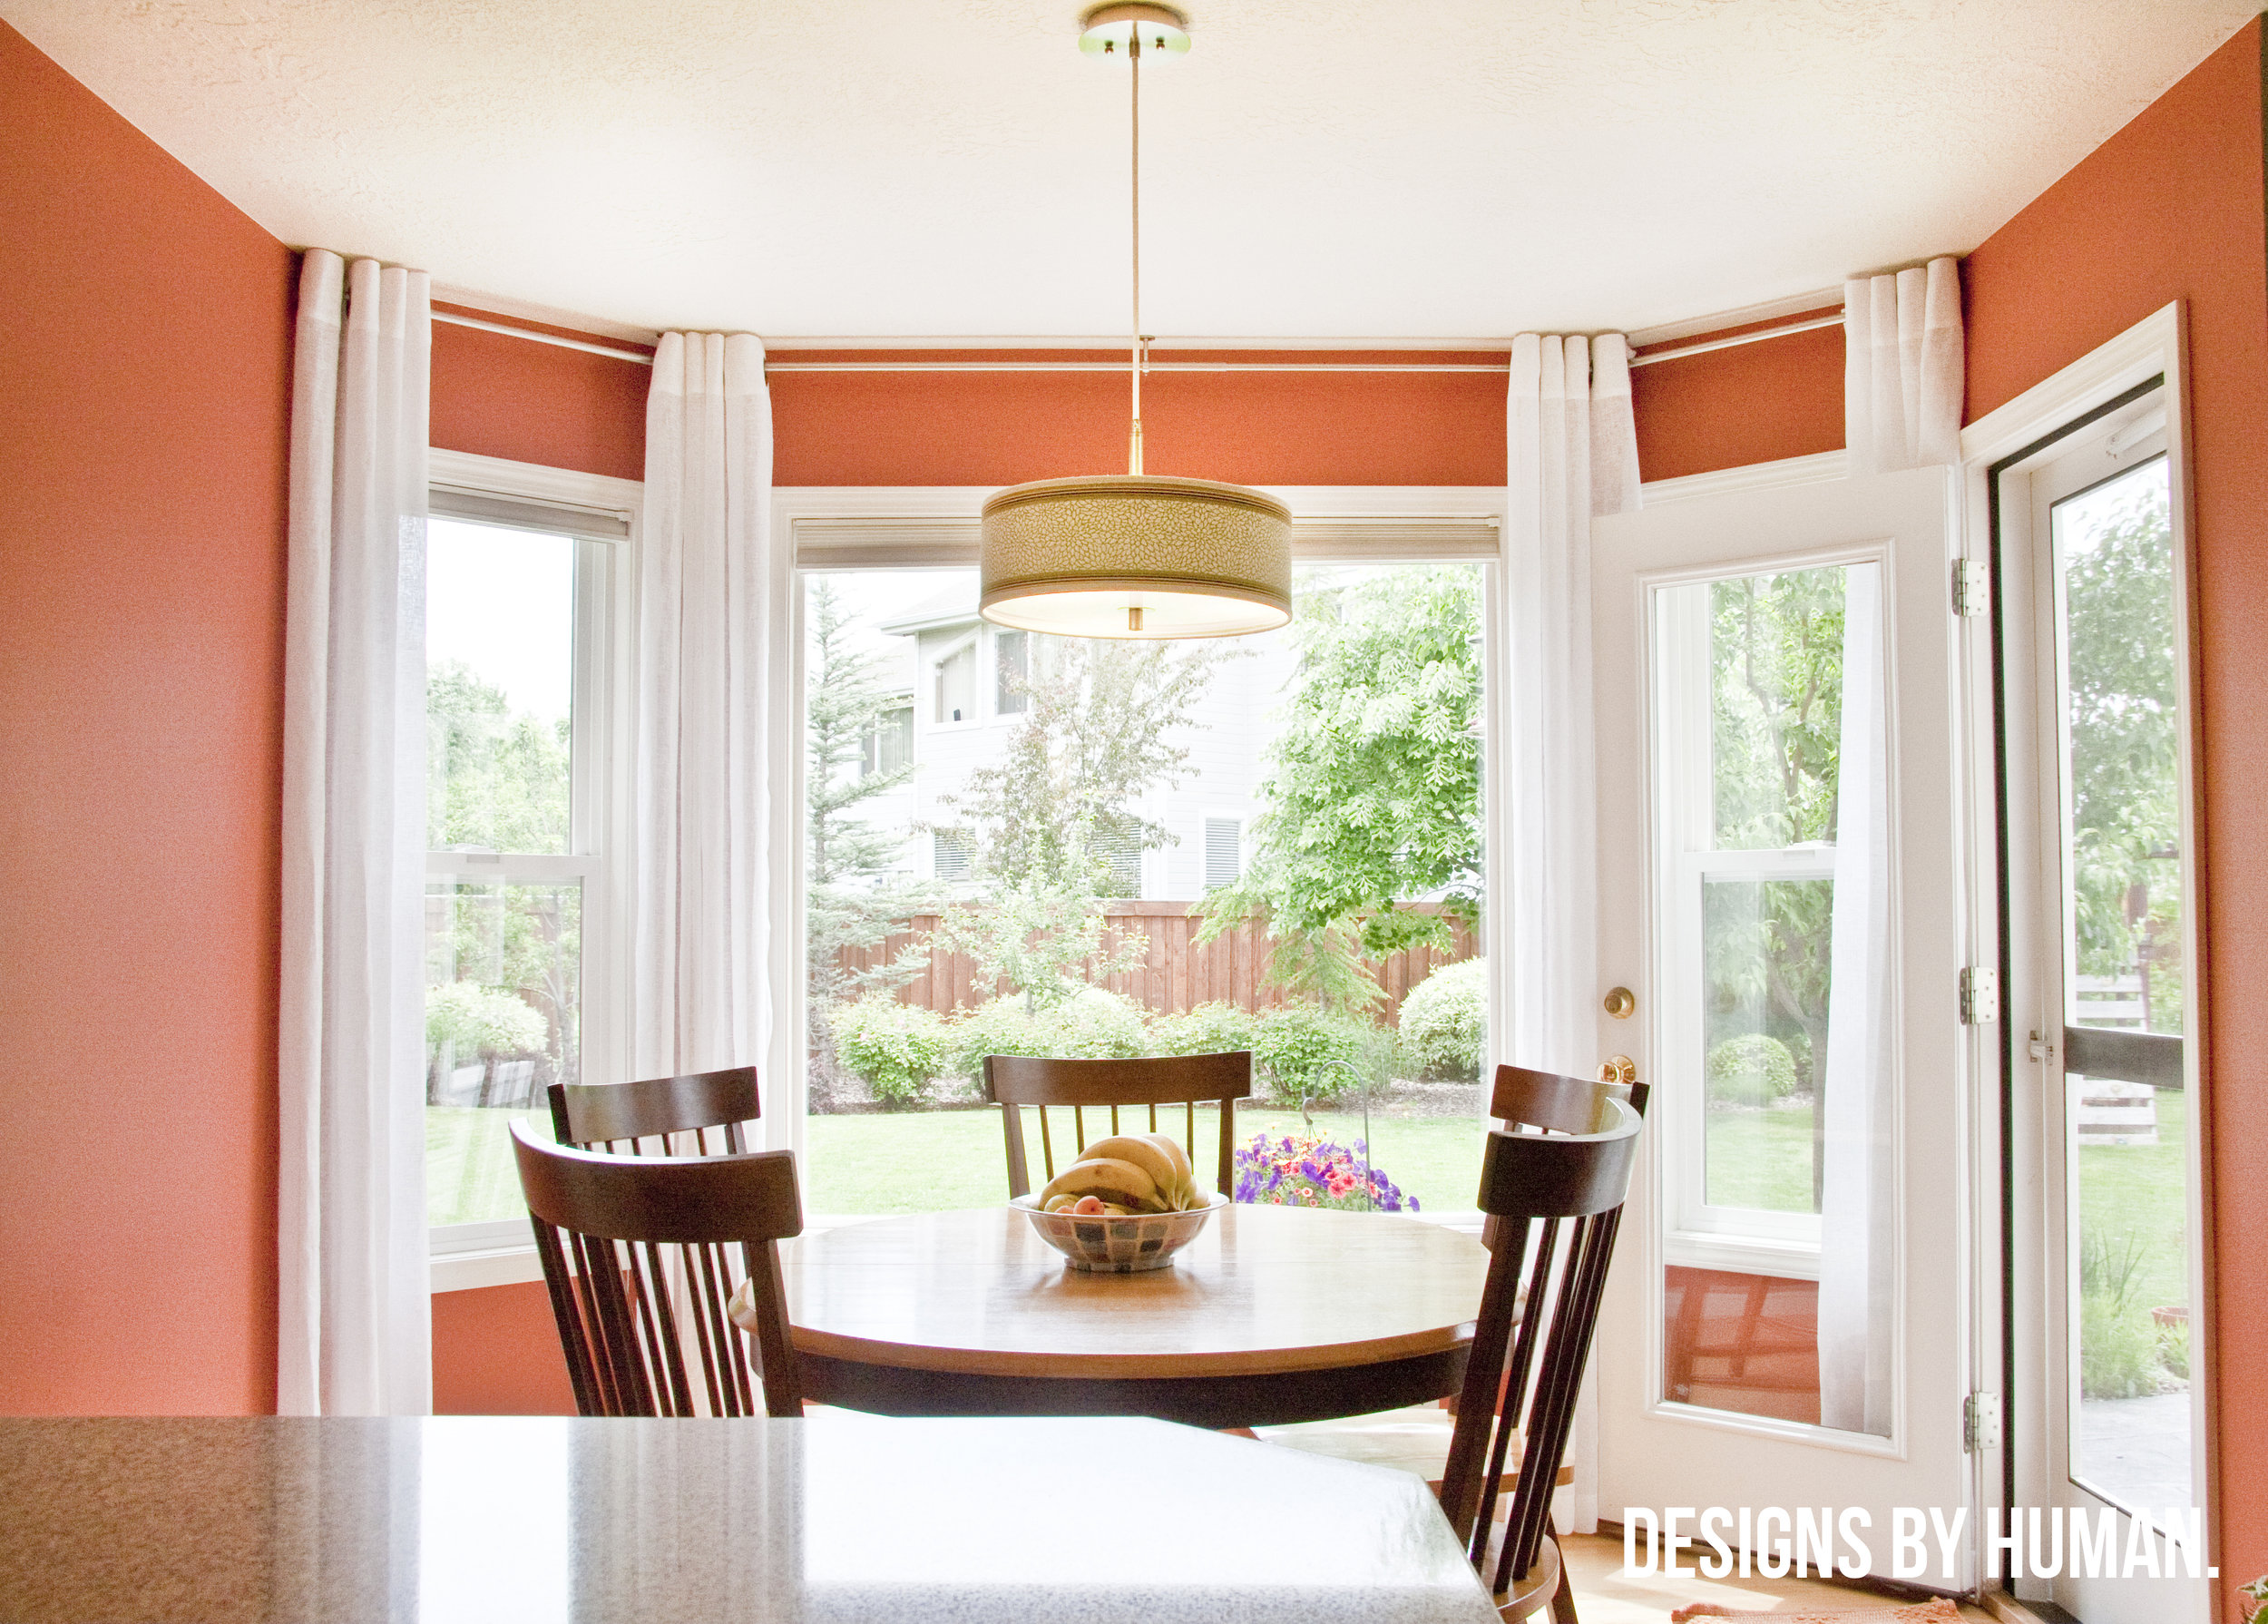 Dining Area - Surprise Valley Residence by  Designs By Human . This rich orange is accented with white window trim and treatments. (Check out our recent feature of this project in  Elle Decor !!